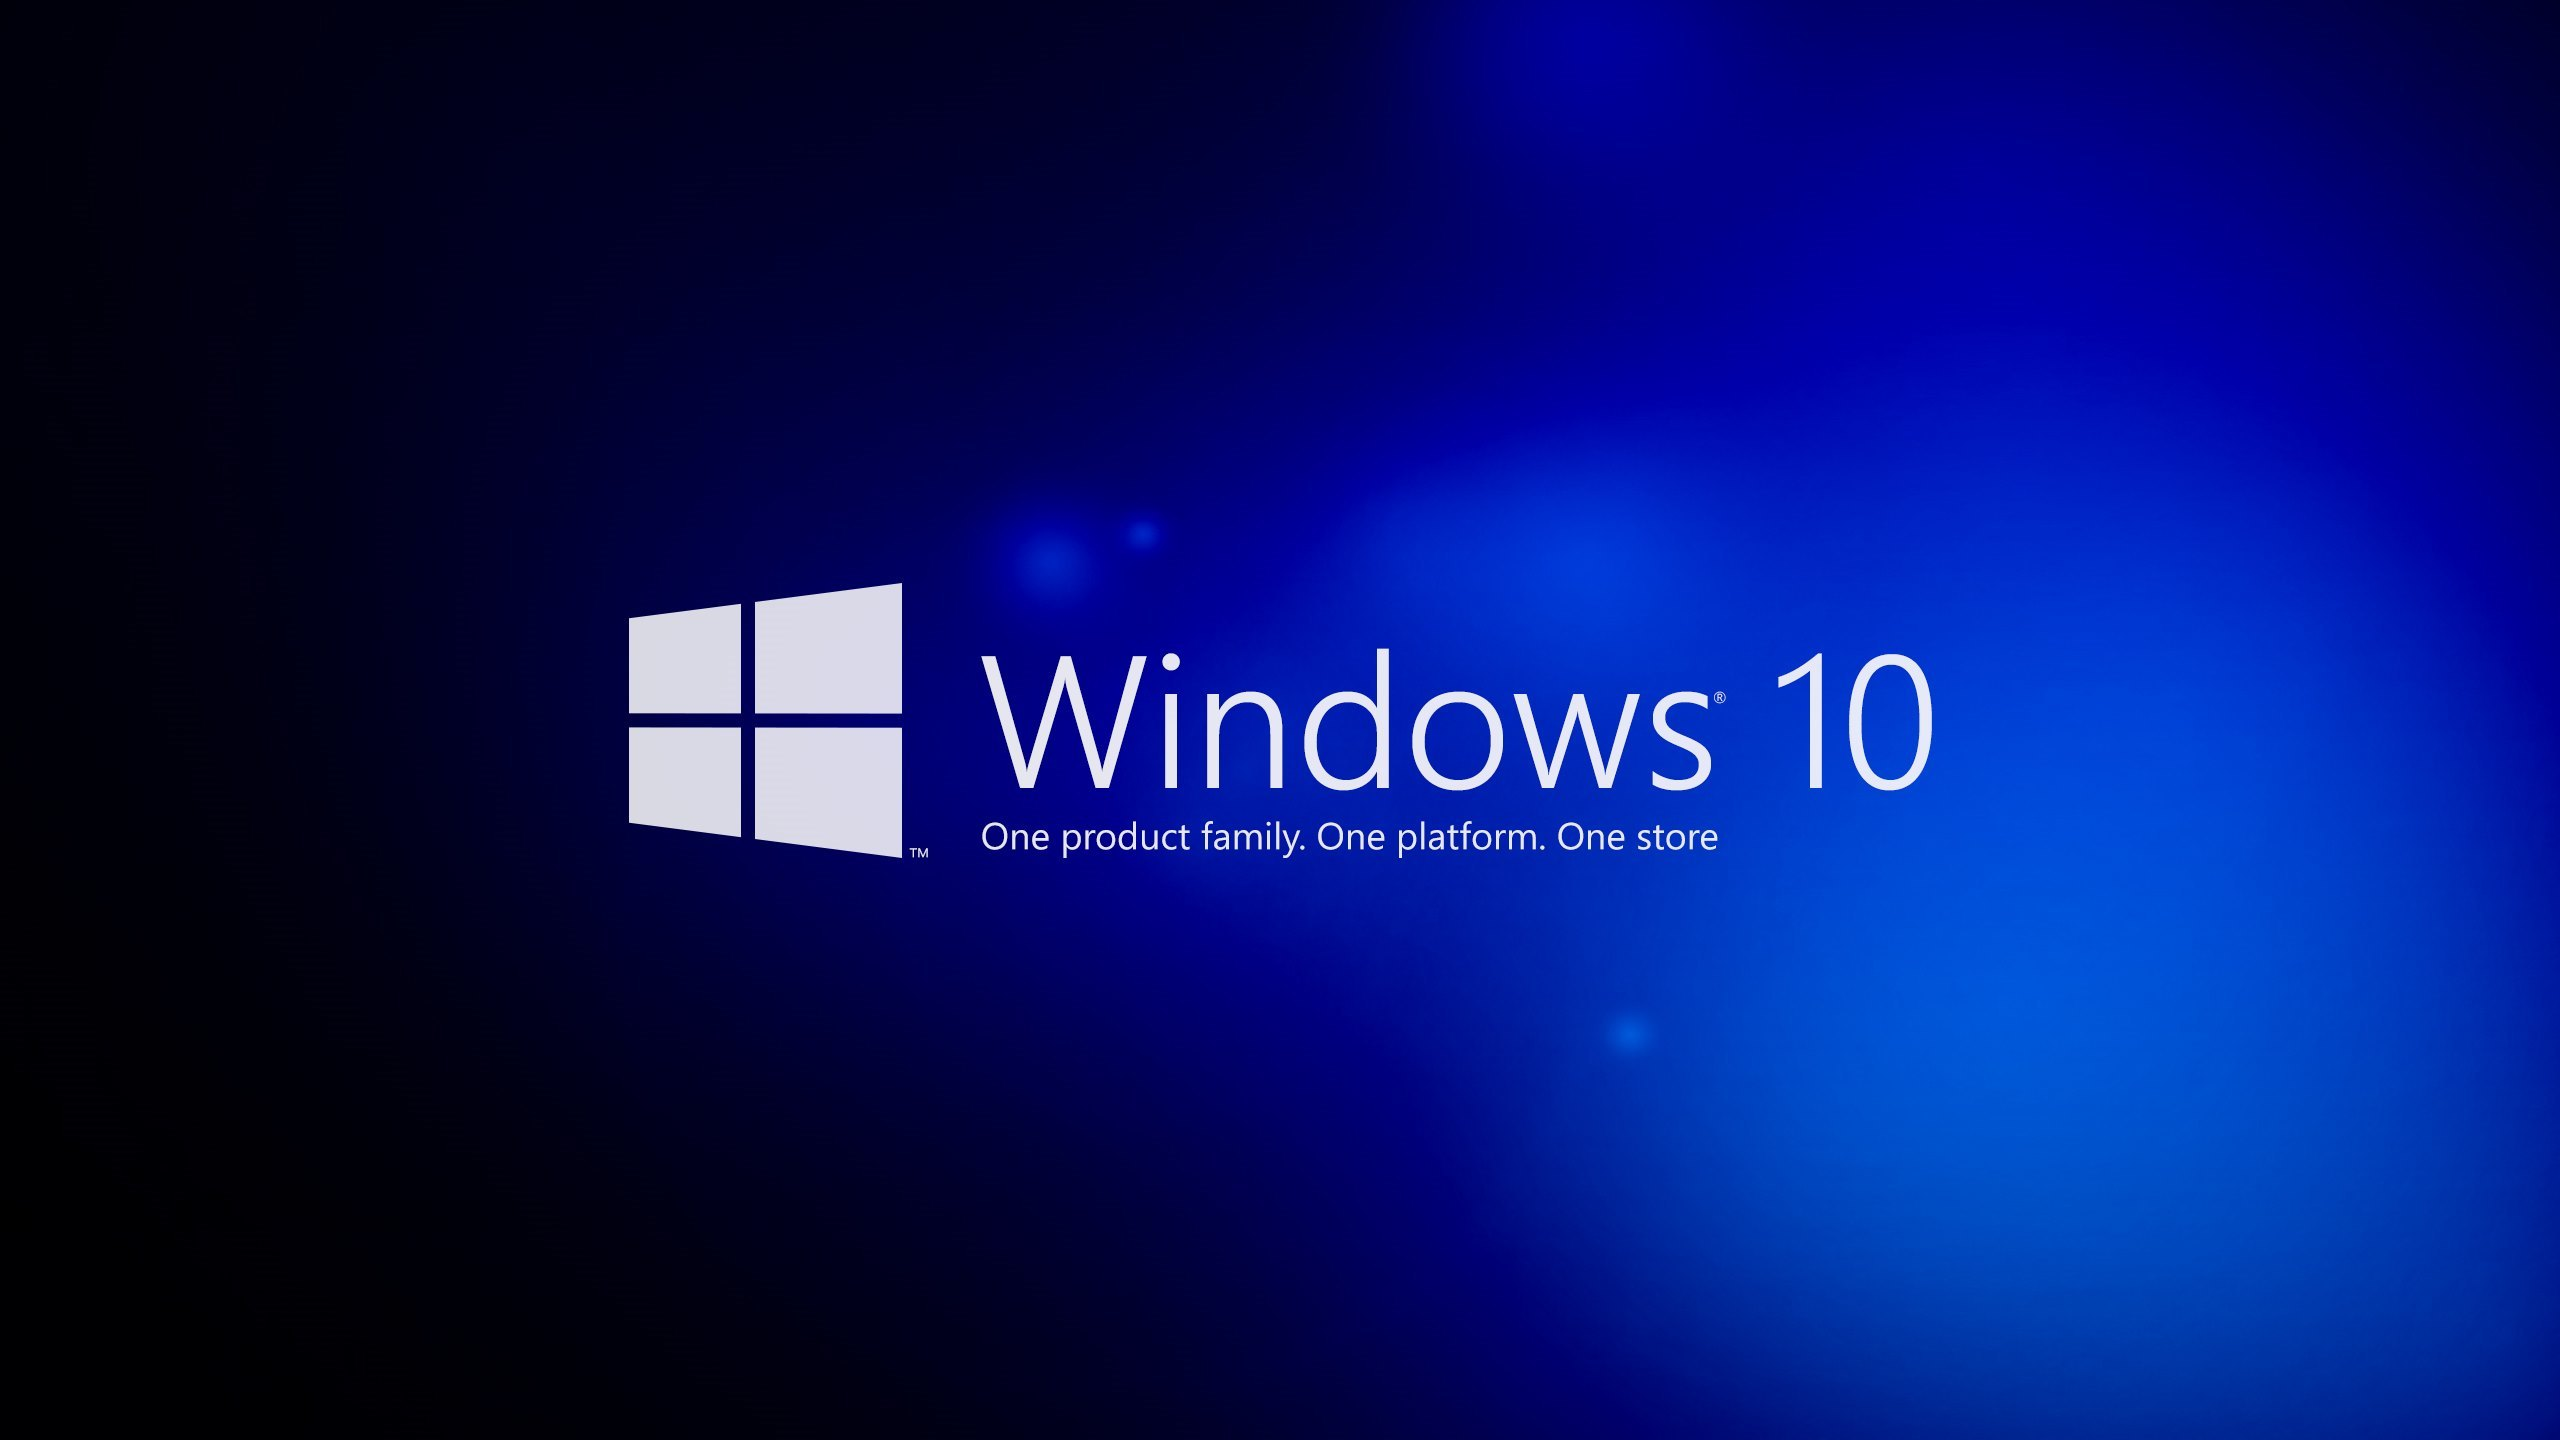 Windows 10 Wallpaper microsoft   Galaxy Note Edge Wallpapers Quad HD 2560x1440